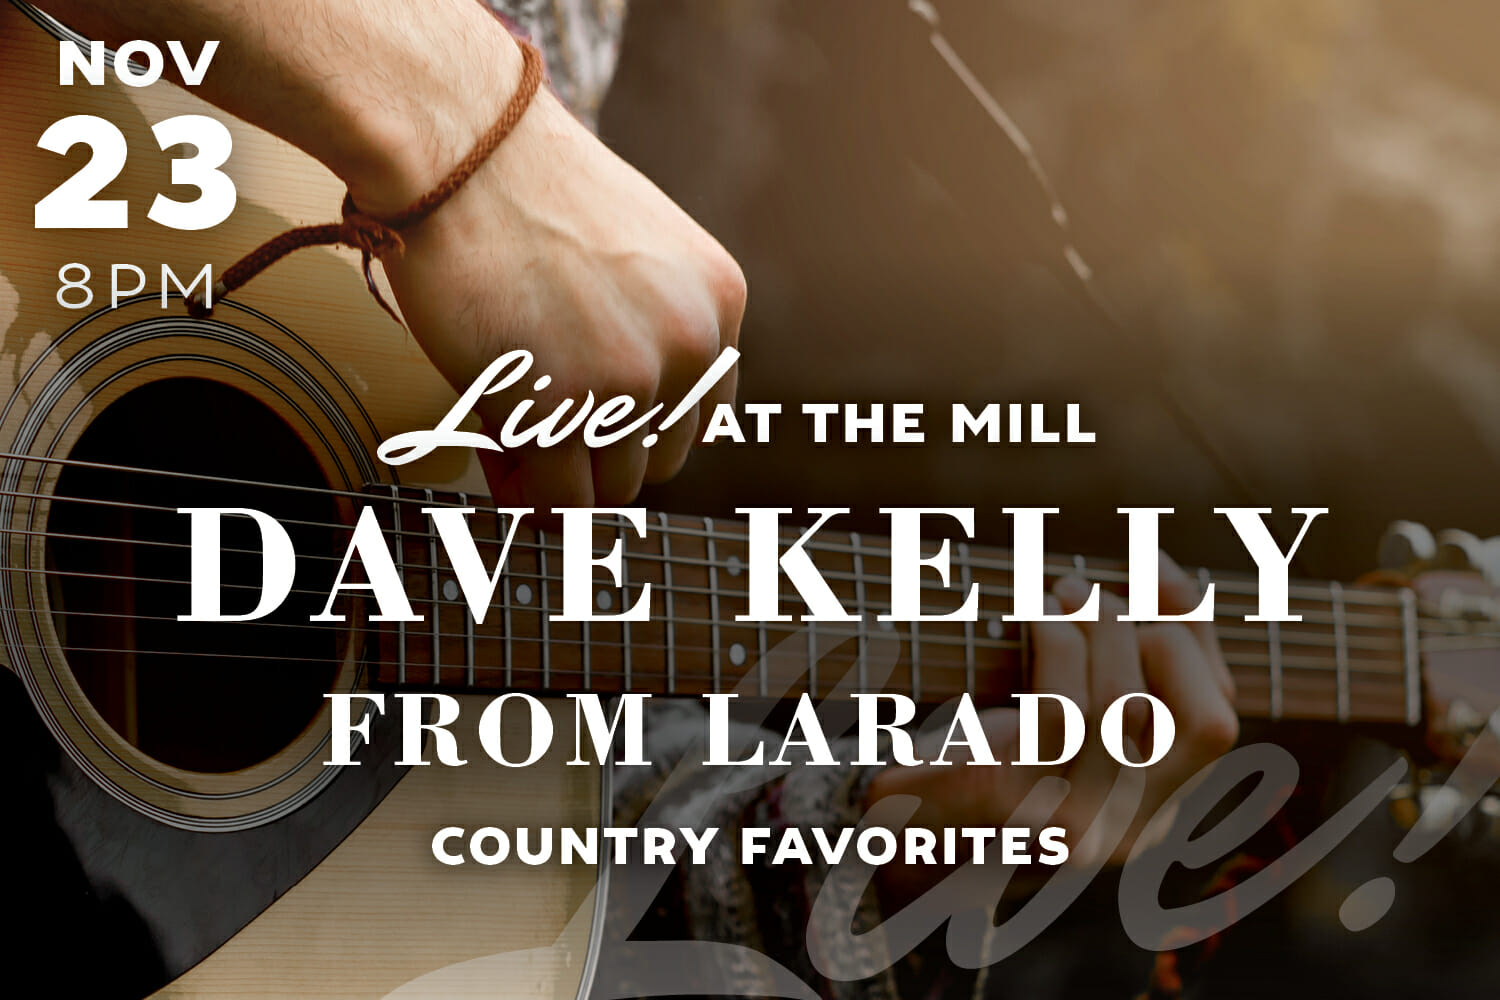 Live Music with Dave Kelly at The Mill in Hershey